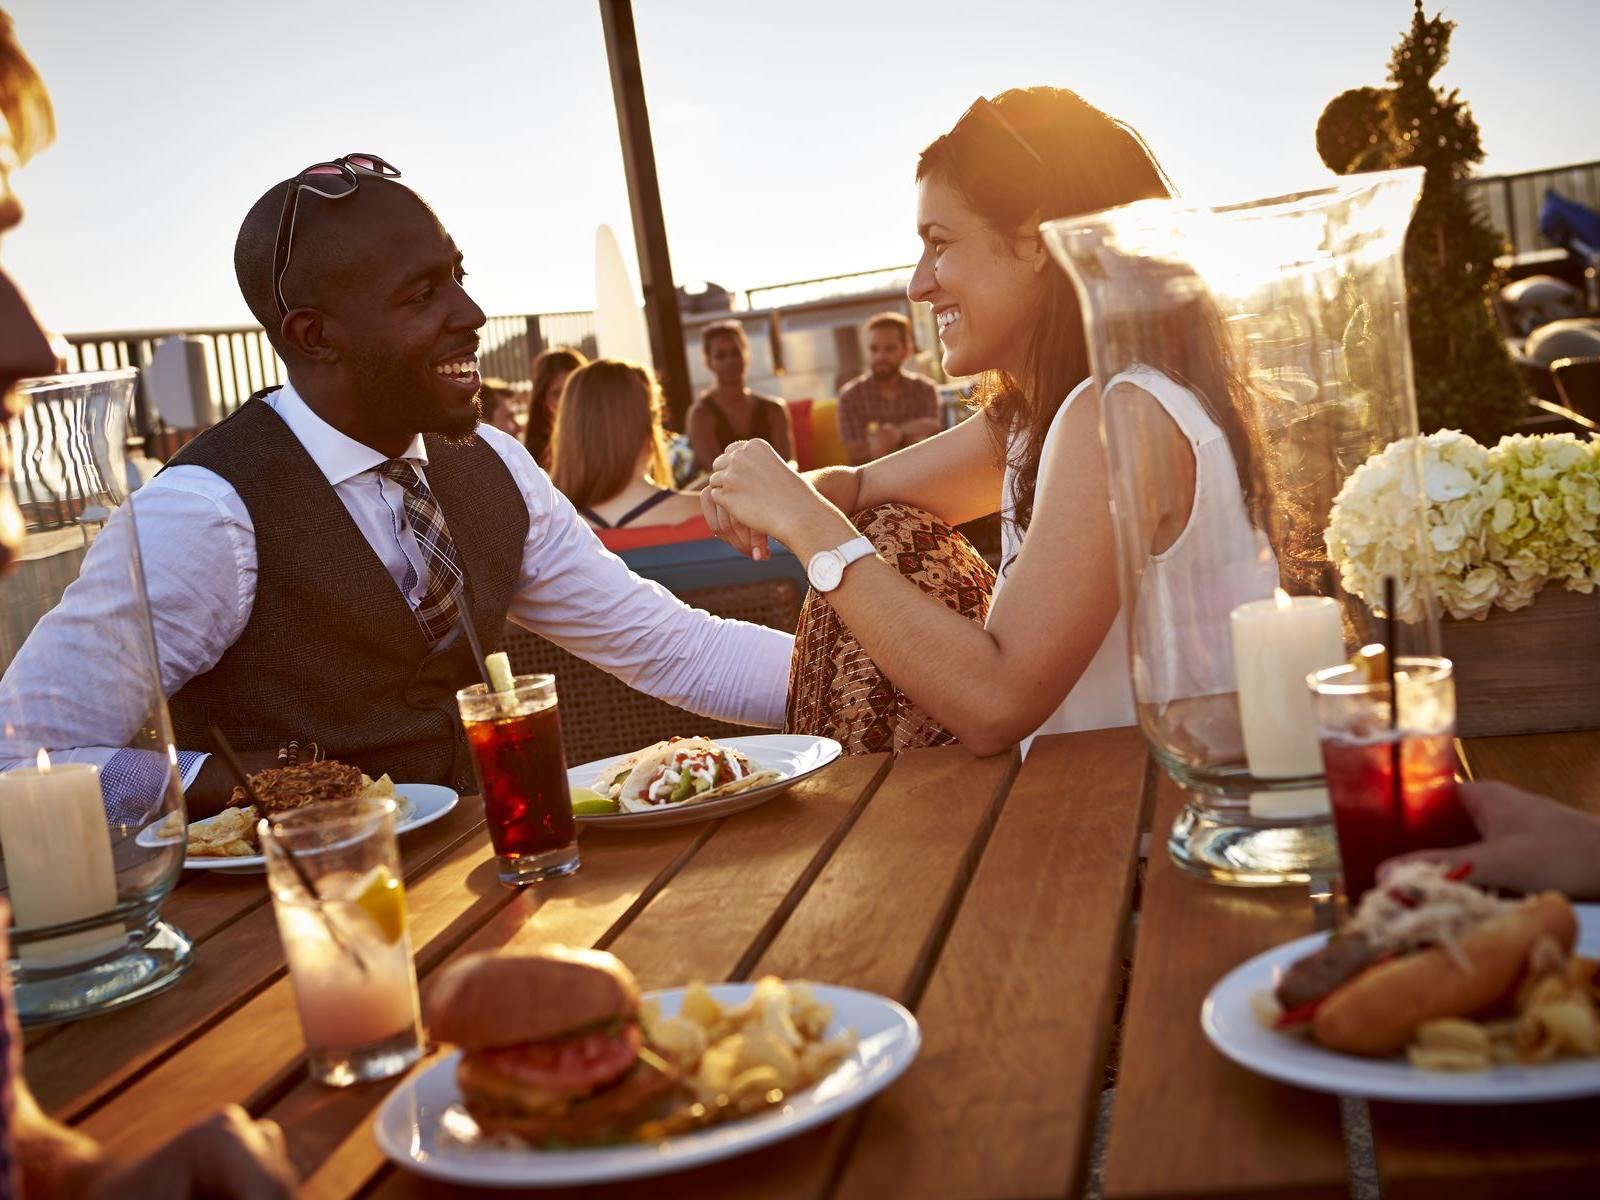 Guests enjoying a meal on the rooftop patio